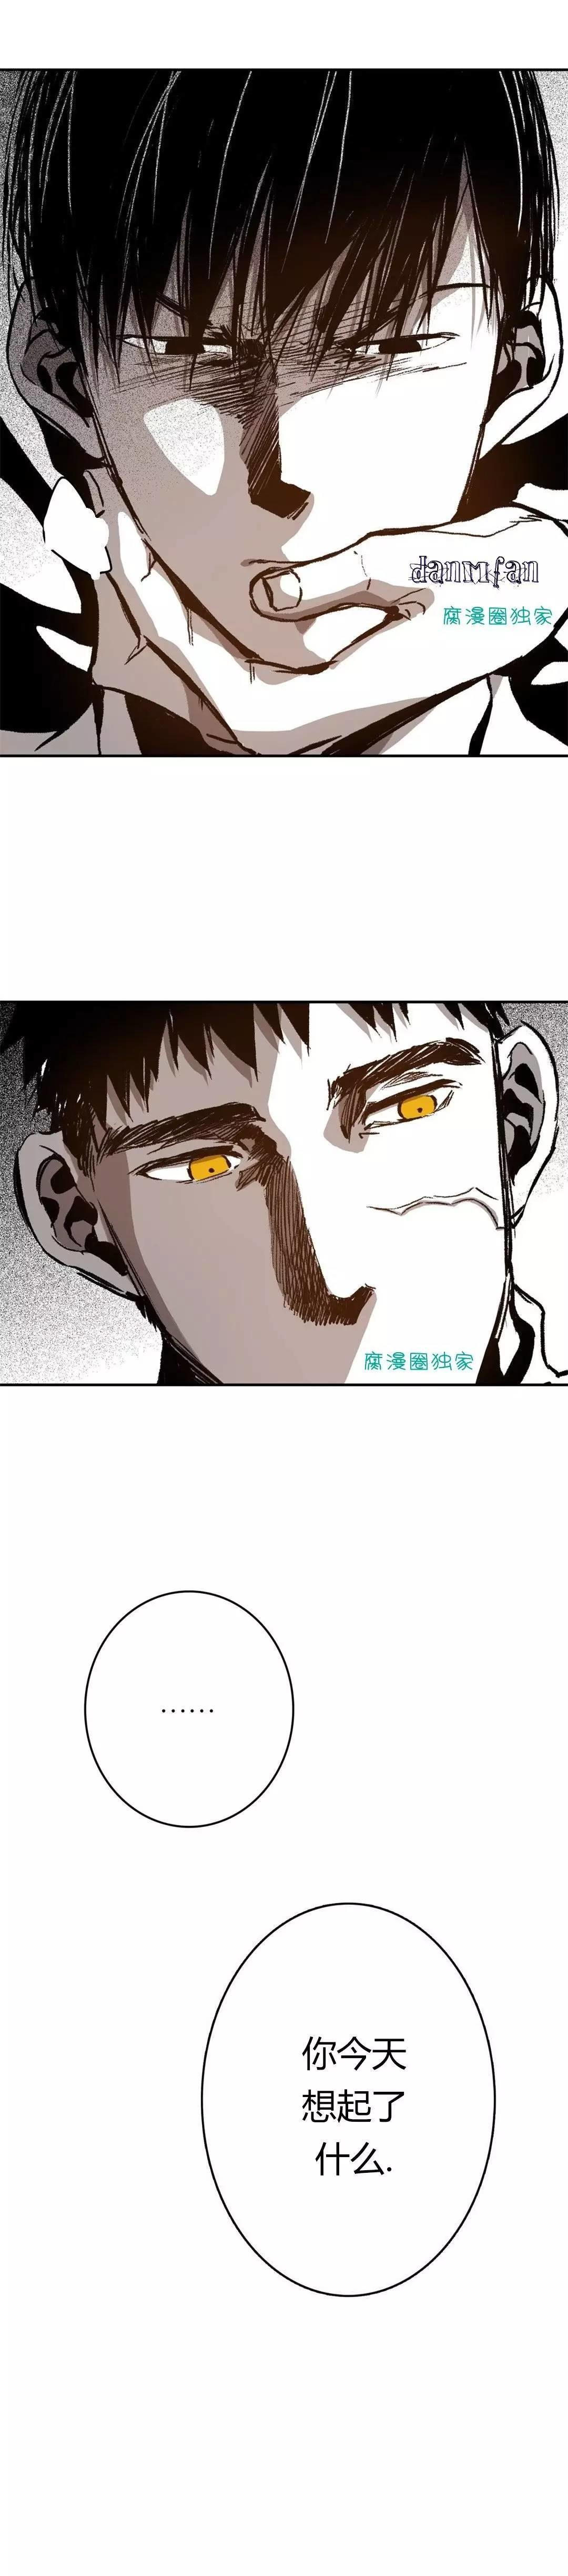 Warehouse chapter 26 18